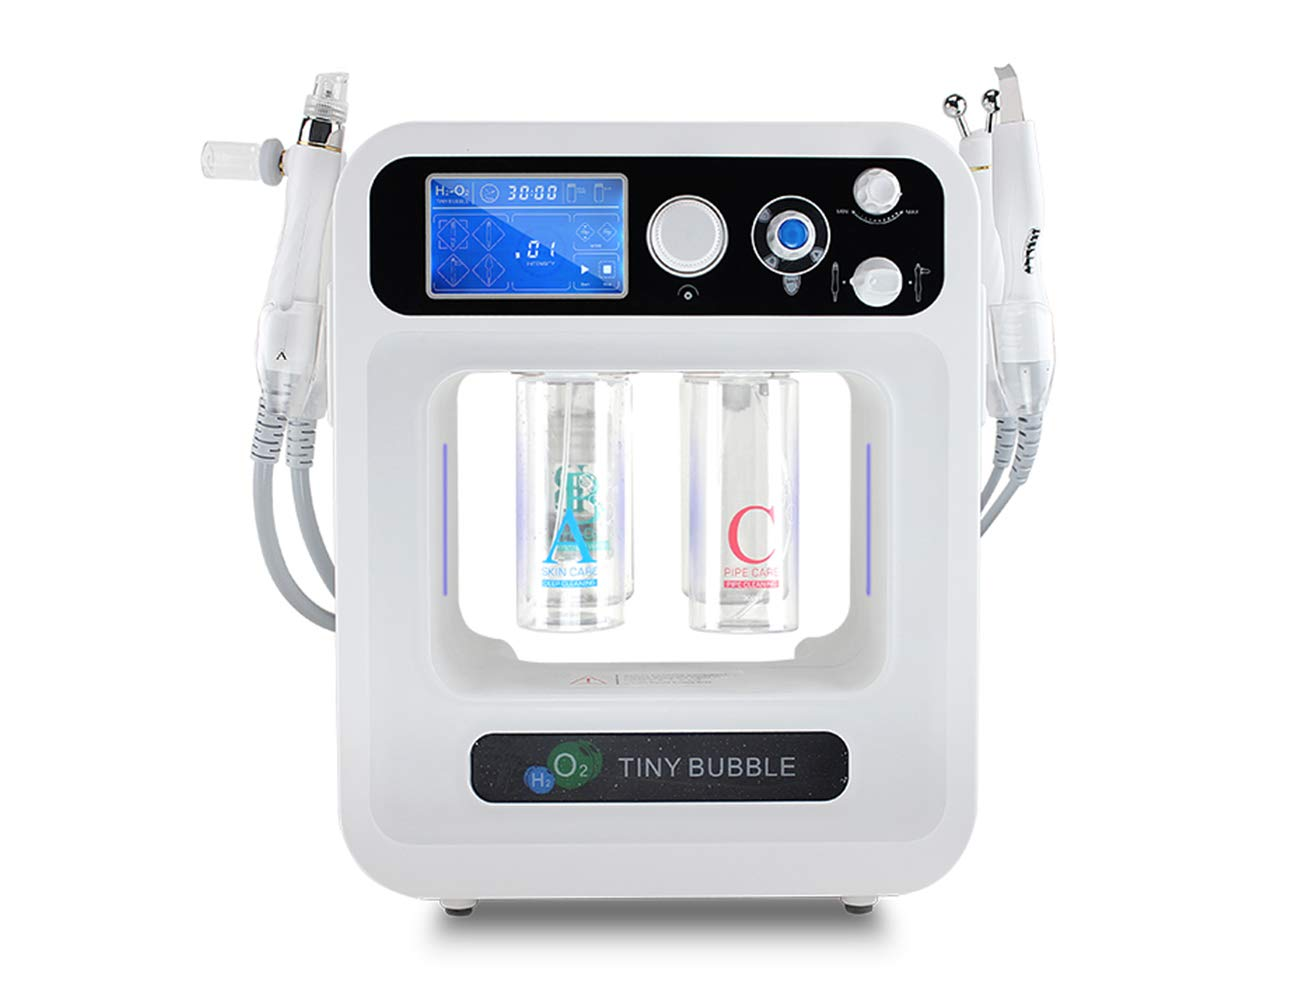 Skin Beauty Face Care 4 In 1 Aqua Water Peeling RF Hydrafacial Machine Elitzia ET89 by Elitzia